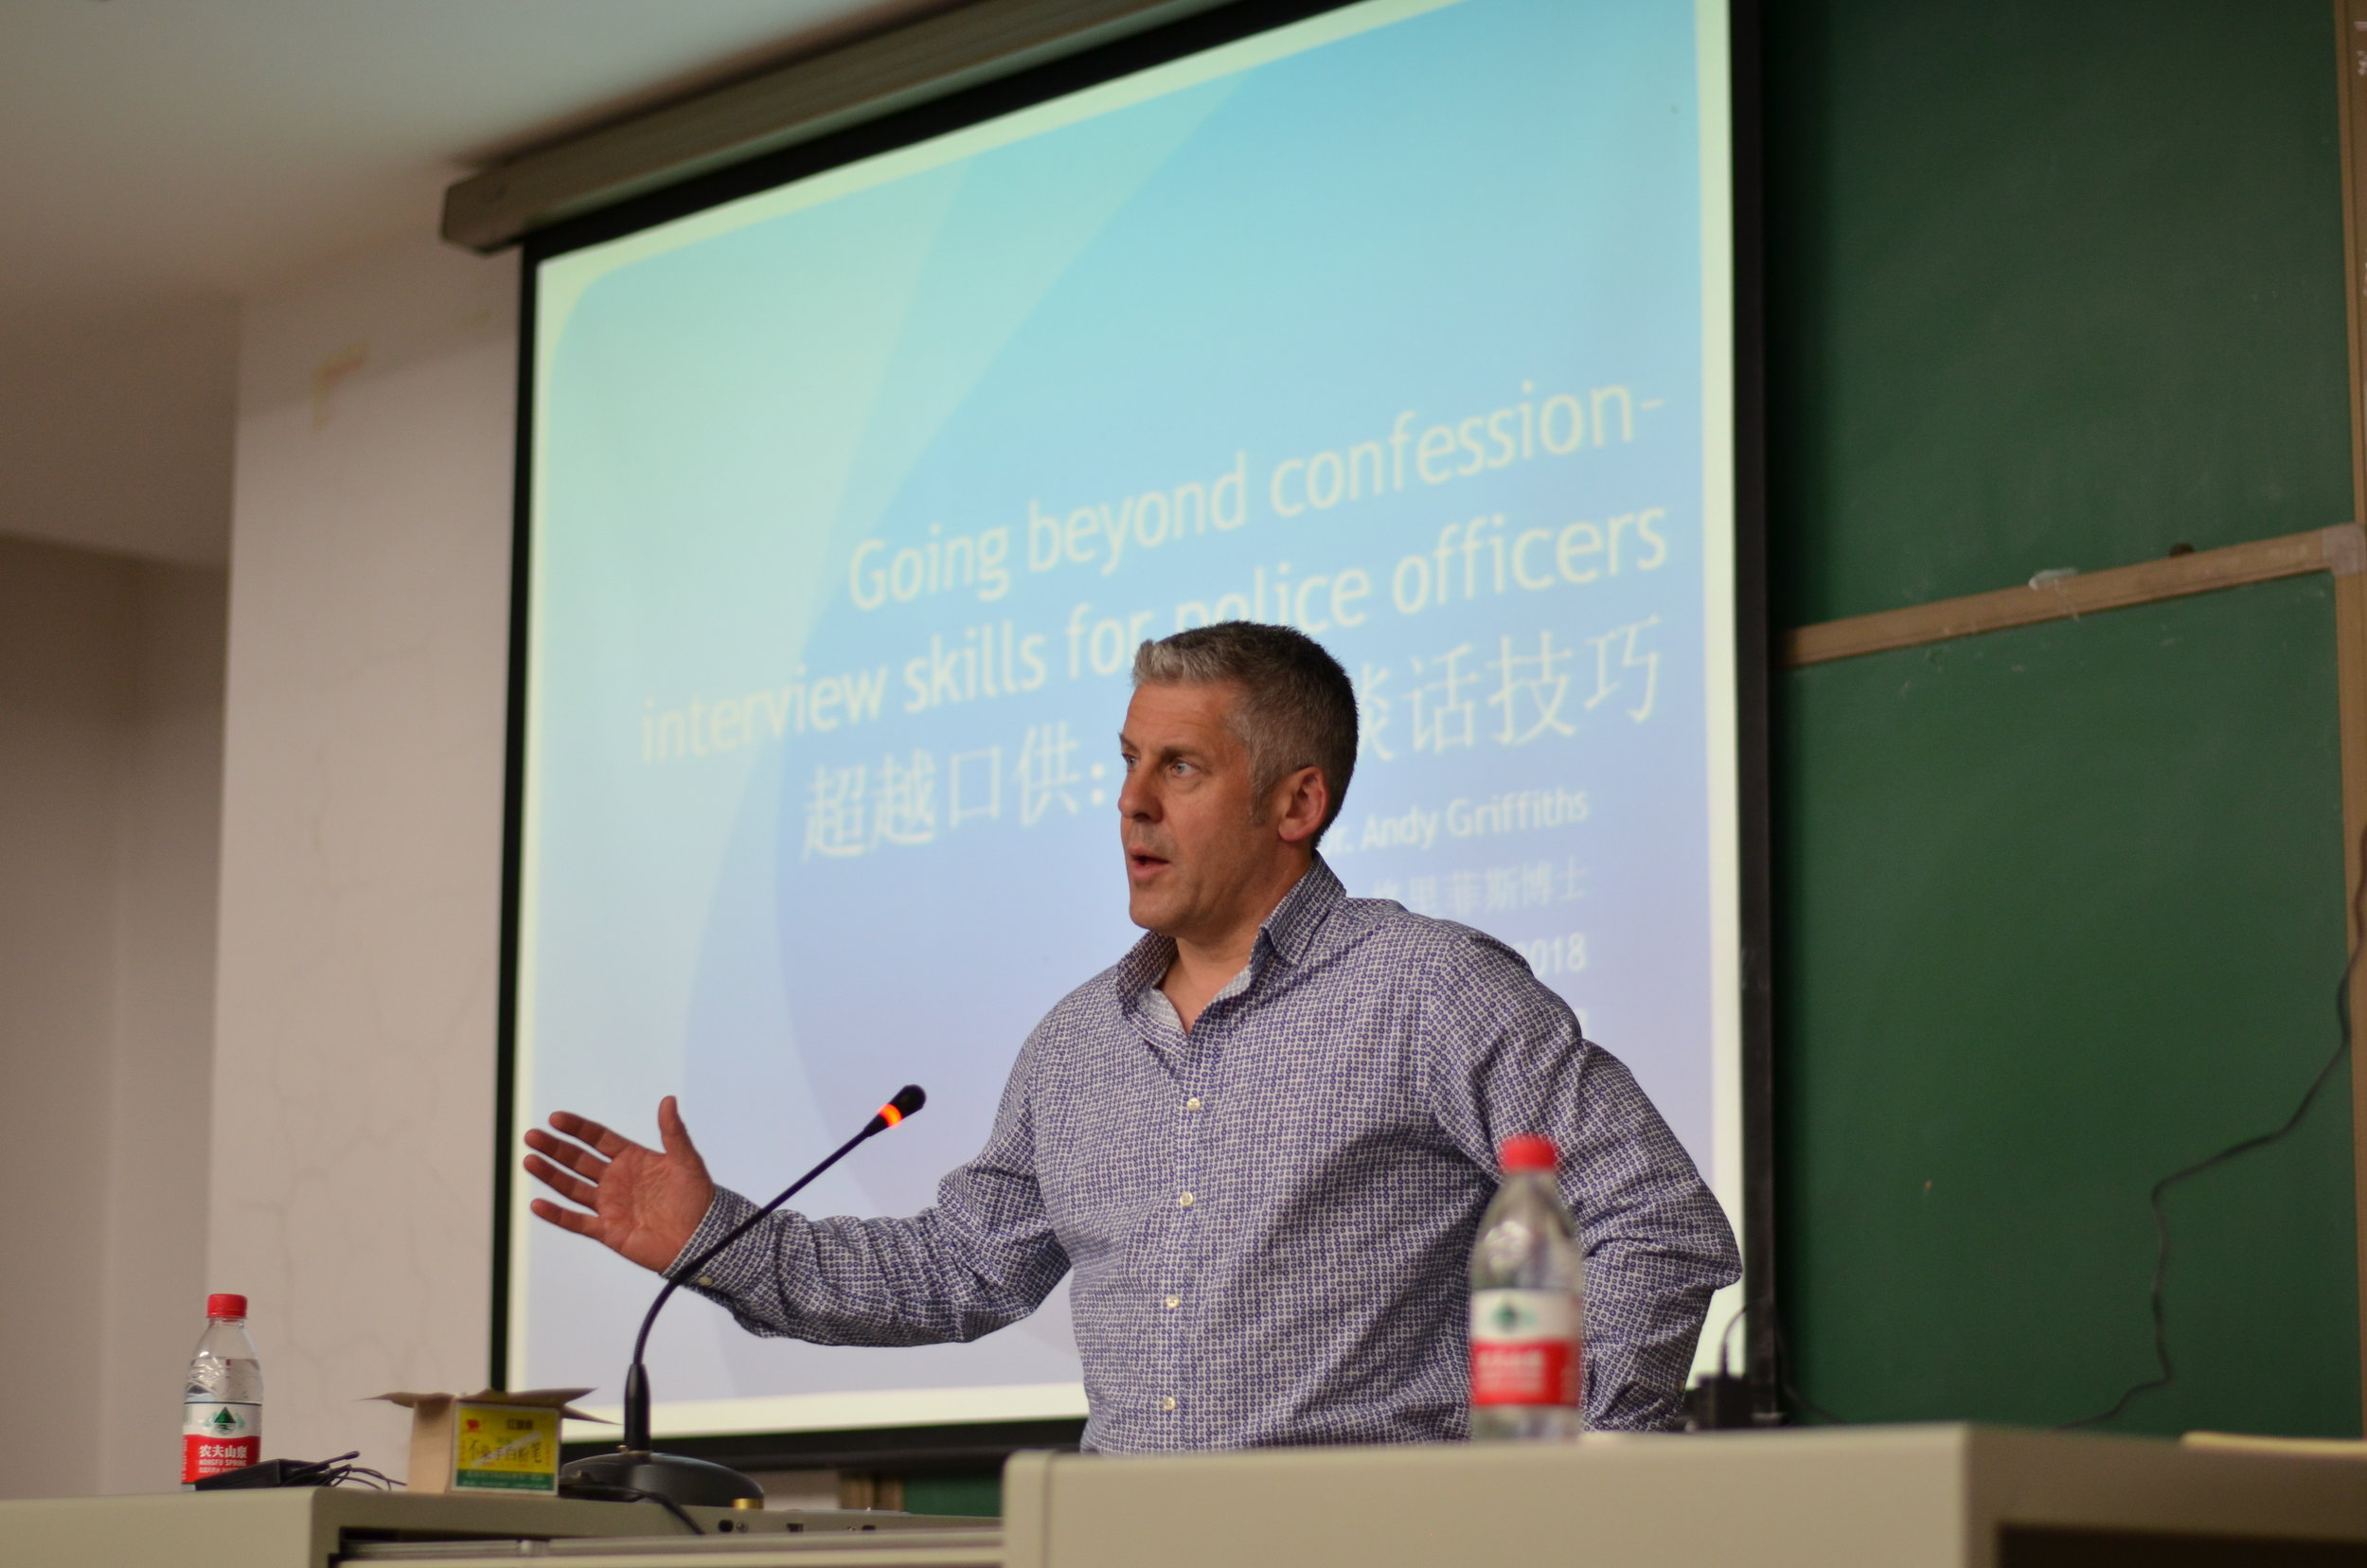 Dr. Griffiths presenting at People's Public Security University